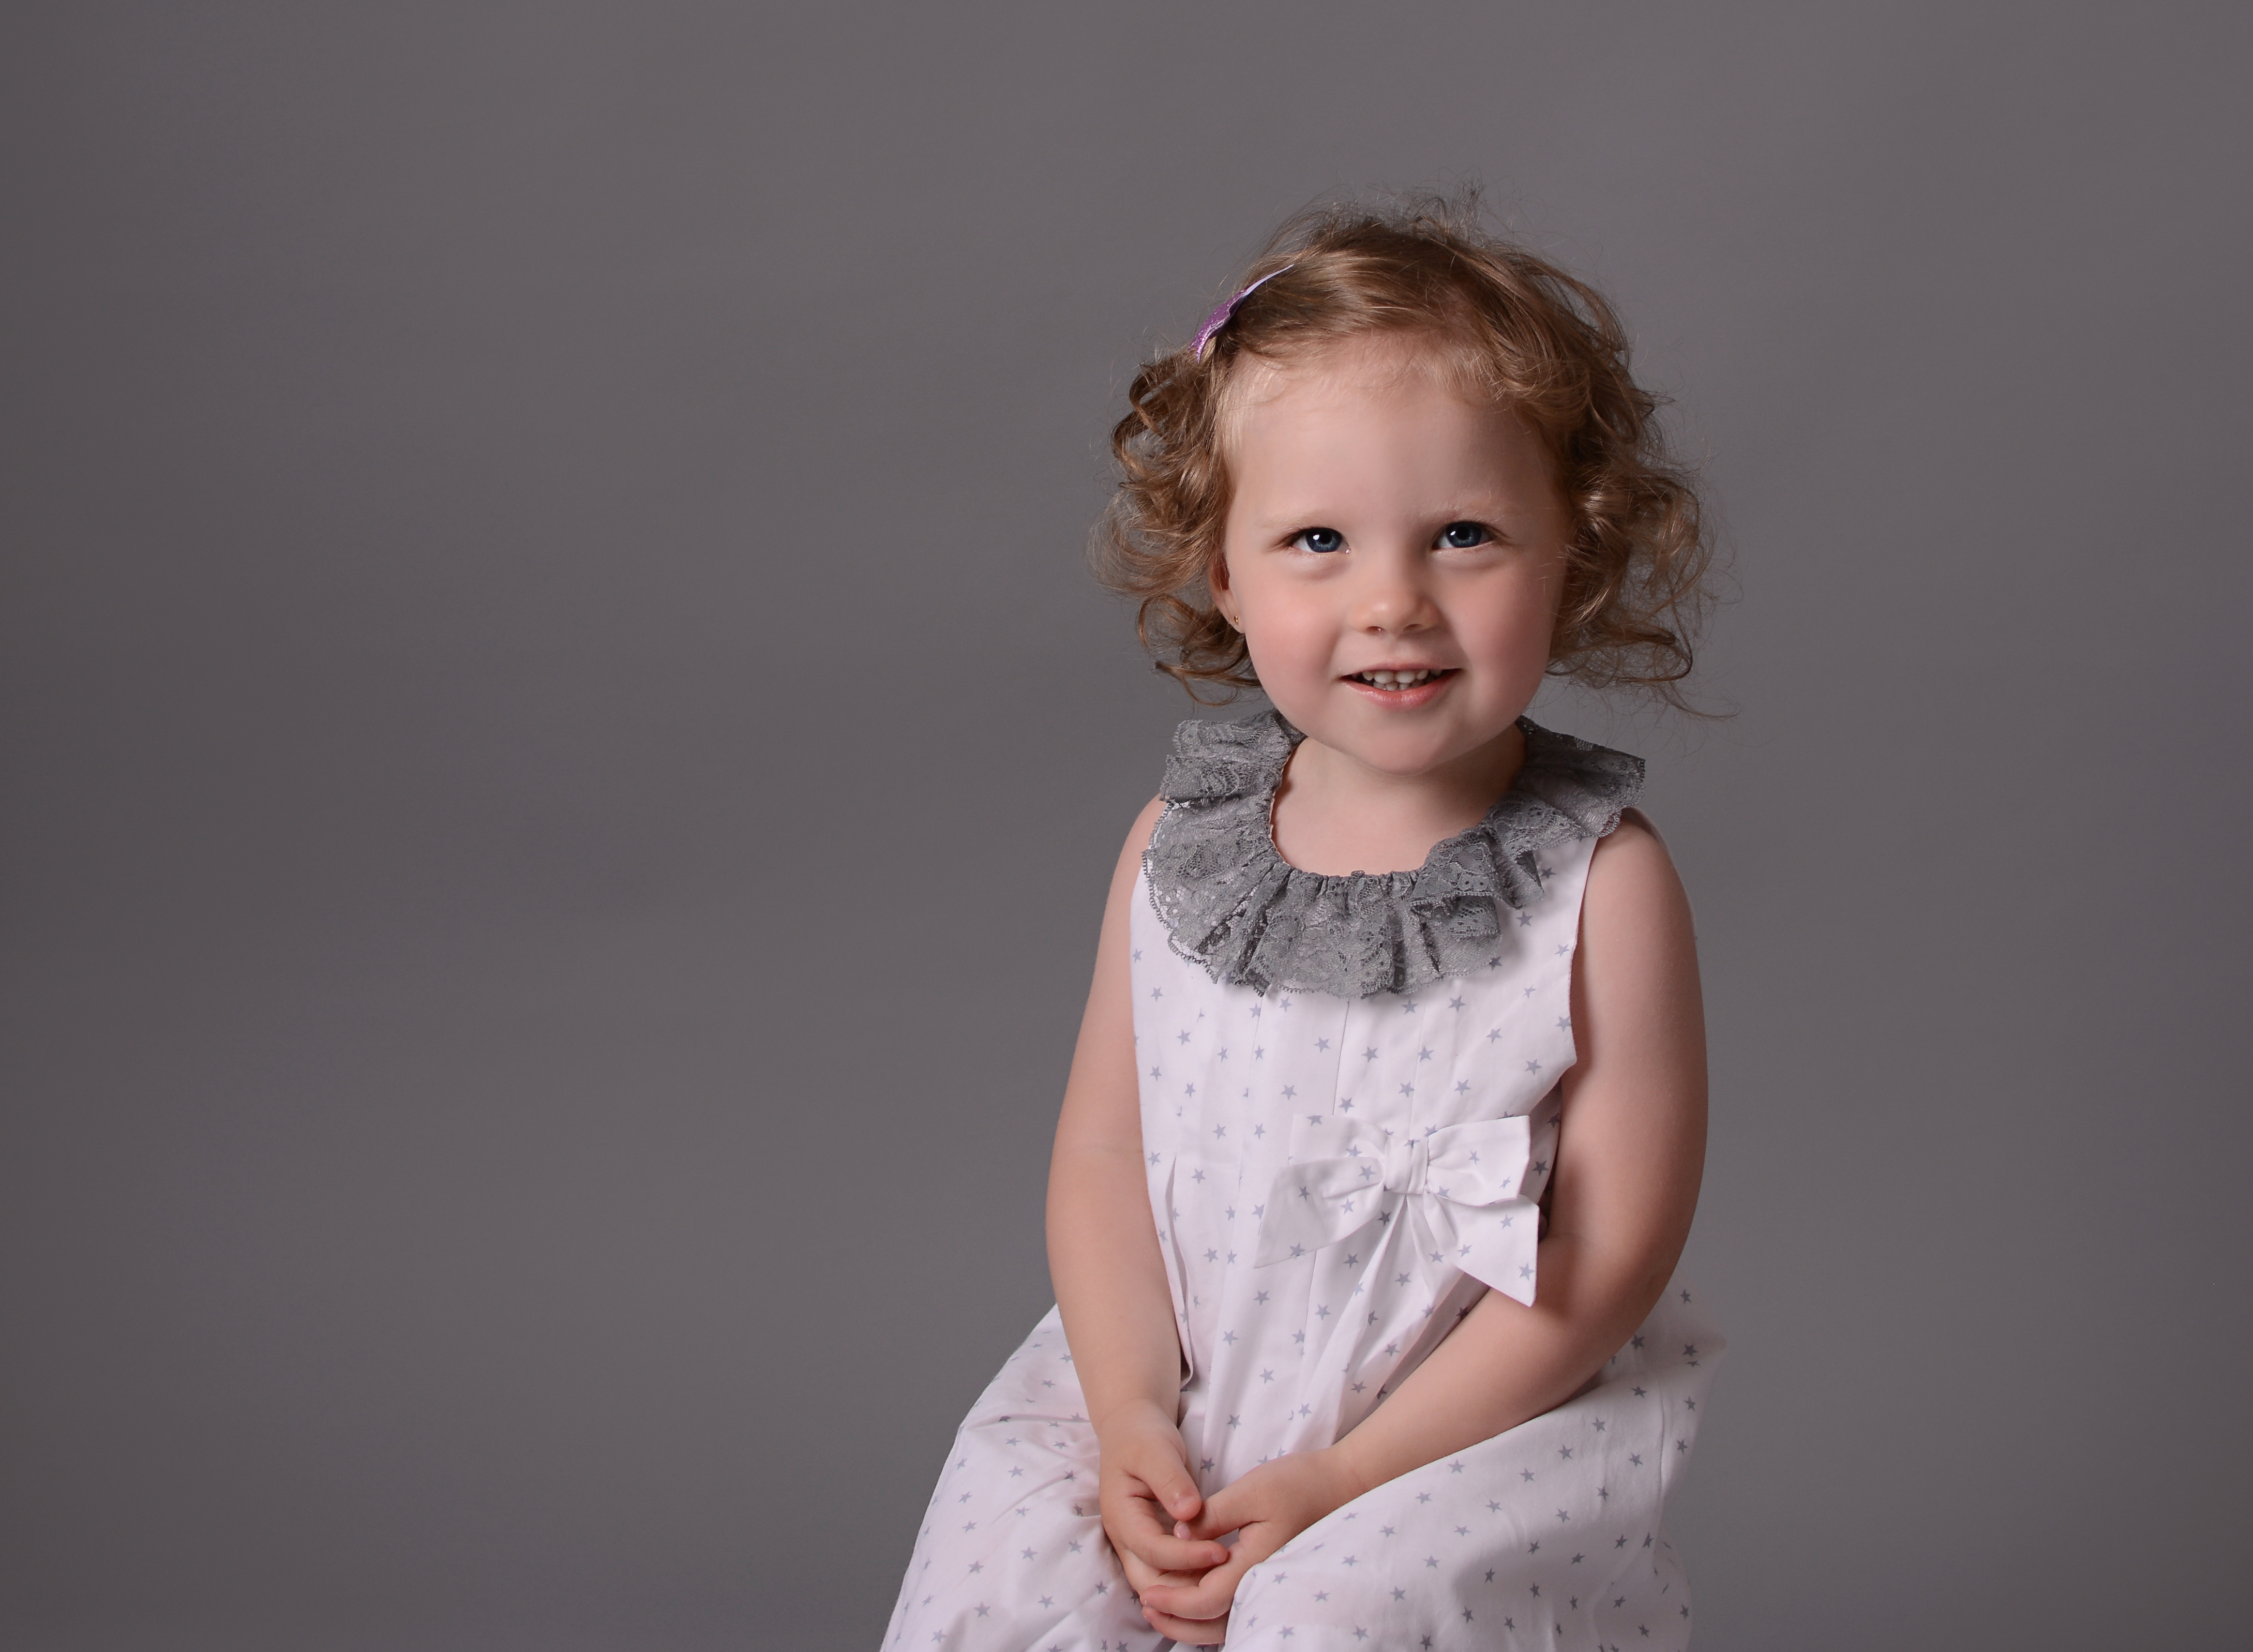 Children's Photography North Wales